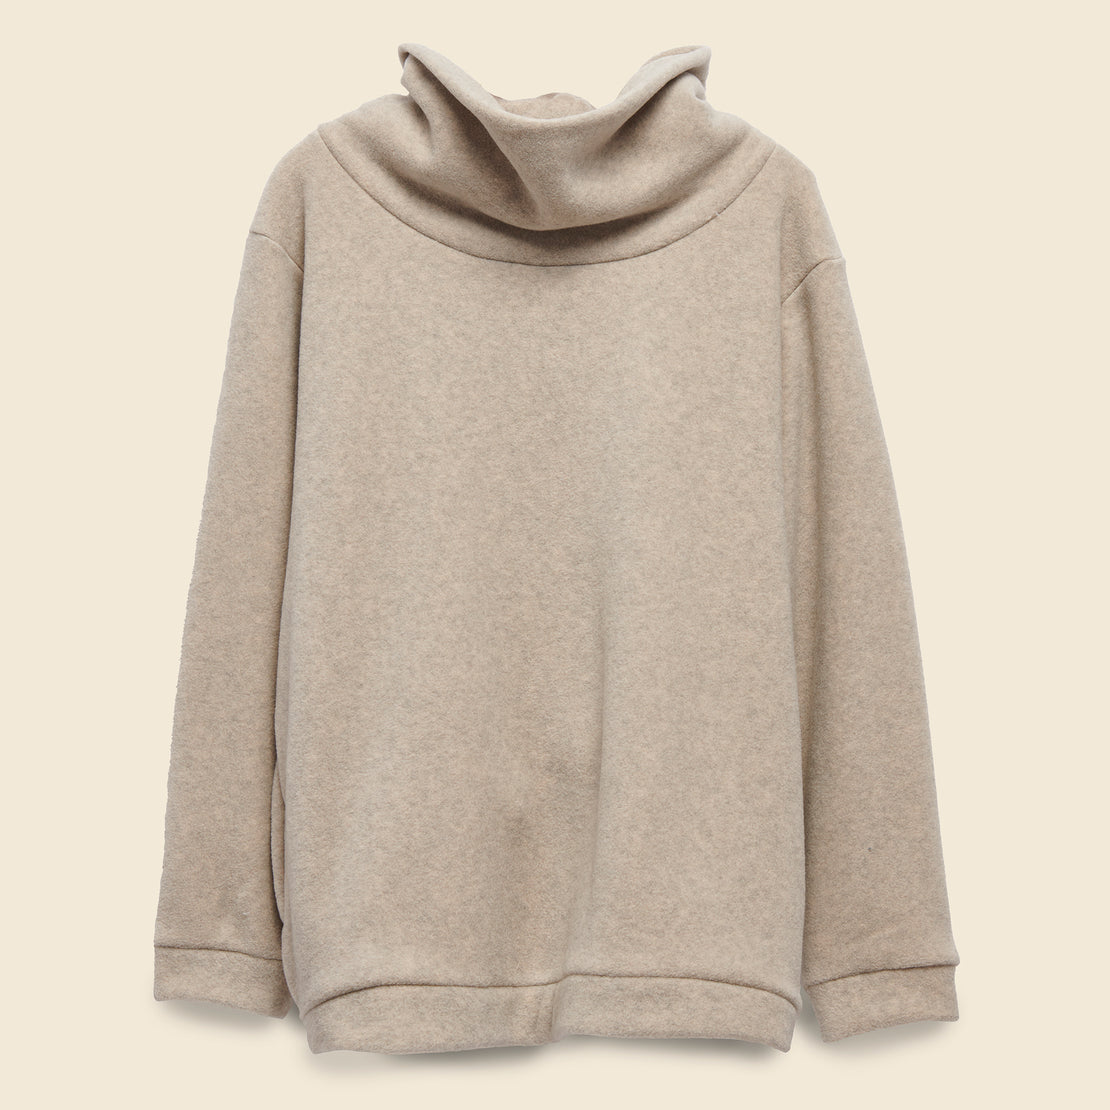 Kapital Reverse Fleece Big High Neck Sweatshirt - Ecru